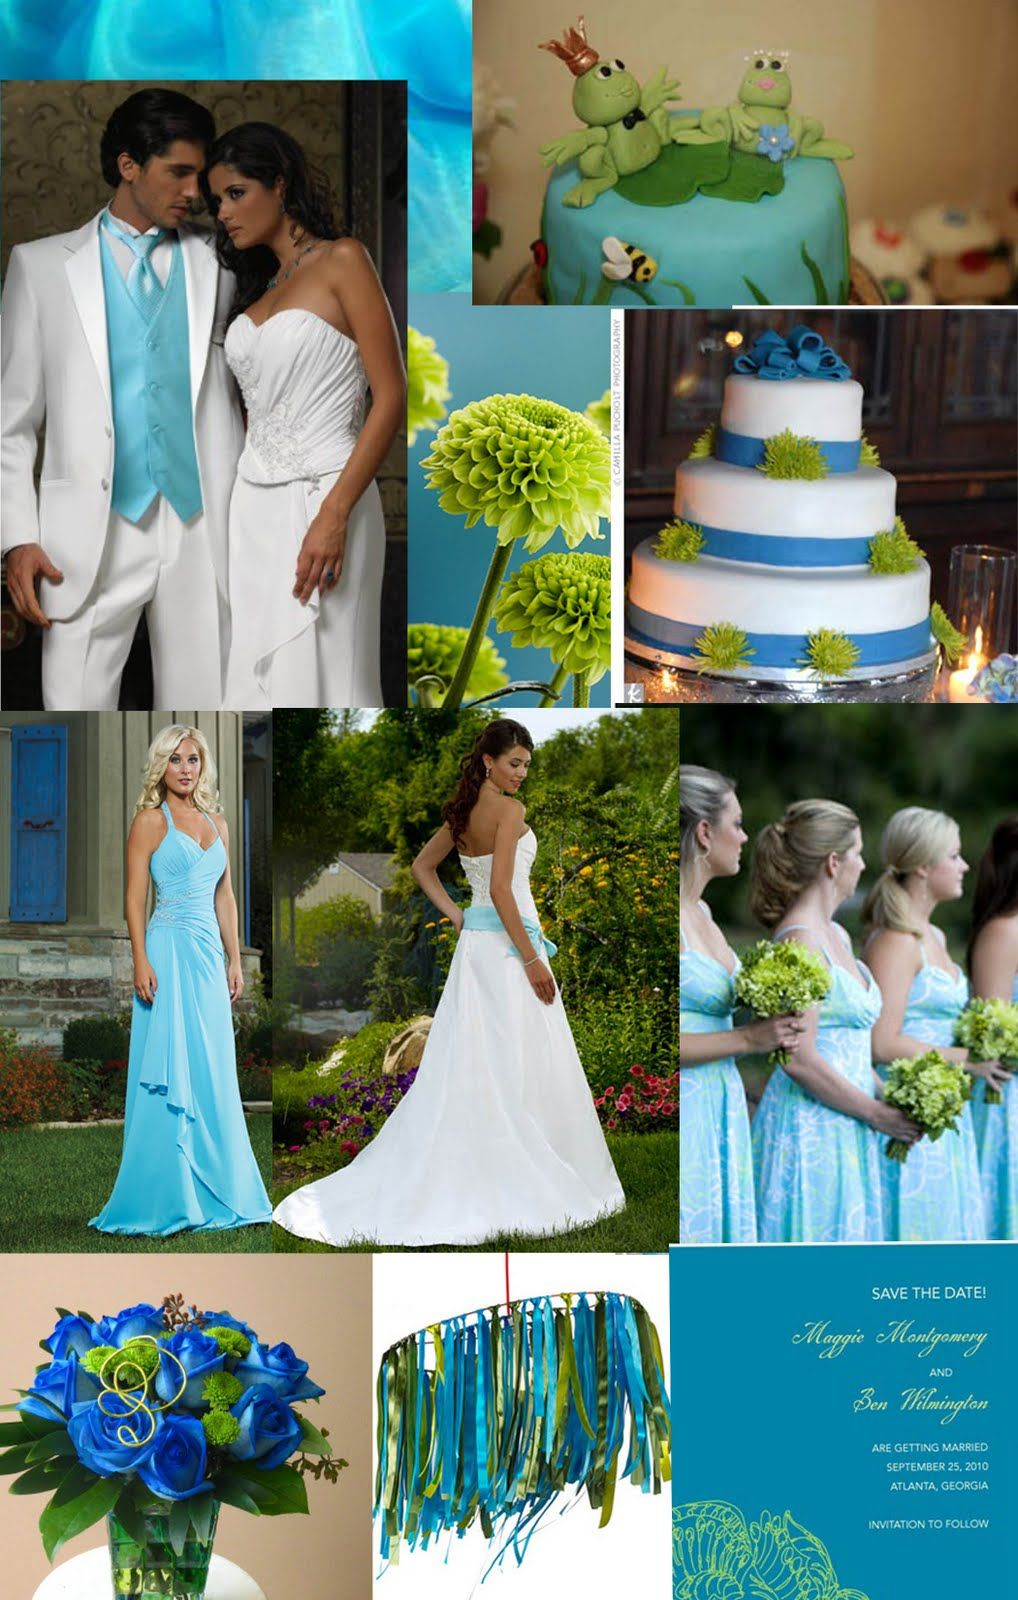 wedding colors and themes wedding color ideas source 3bpblogspot